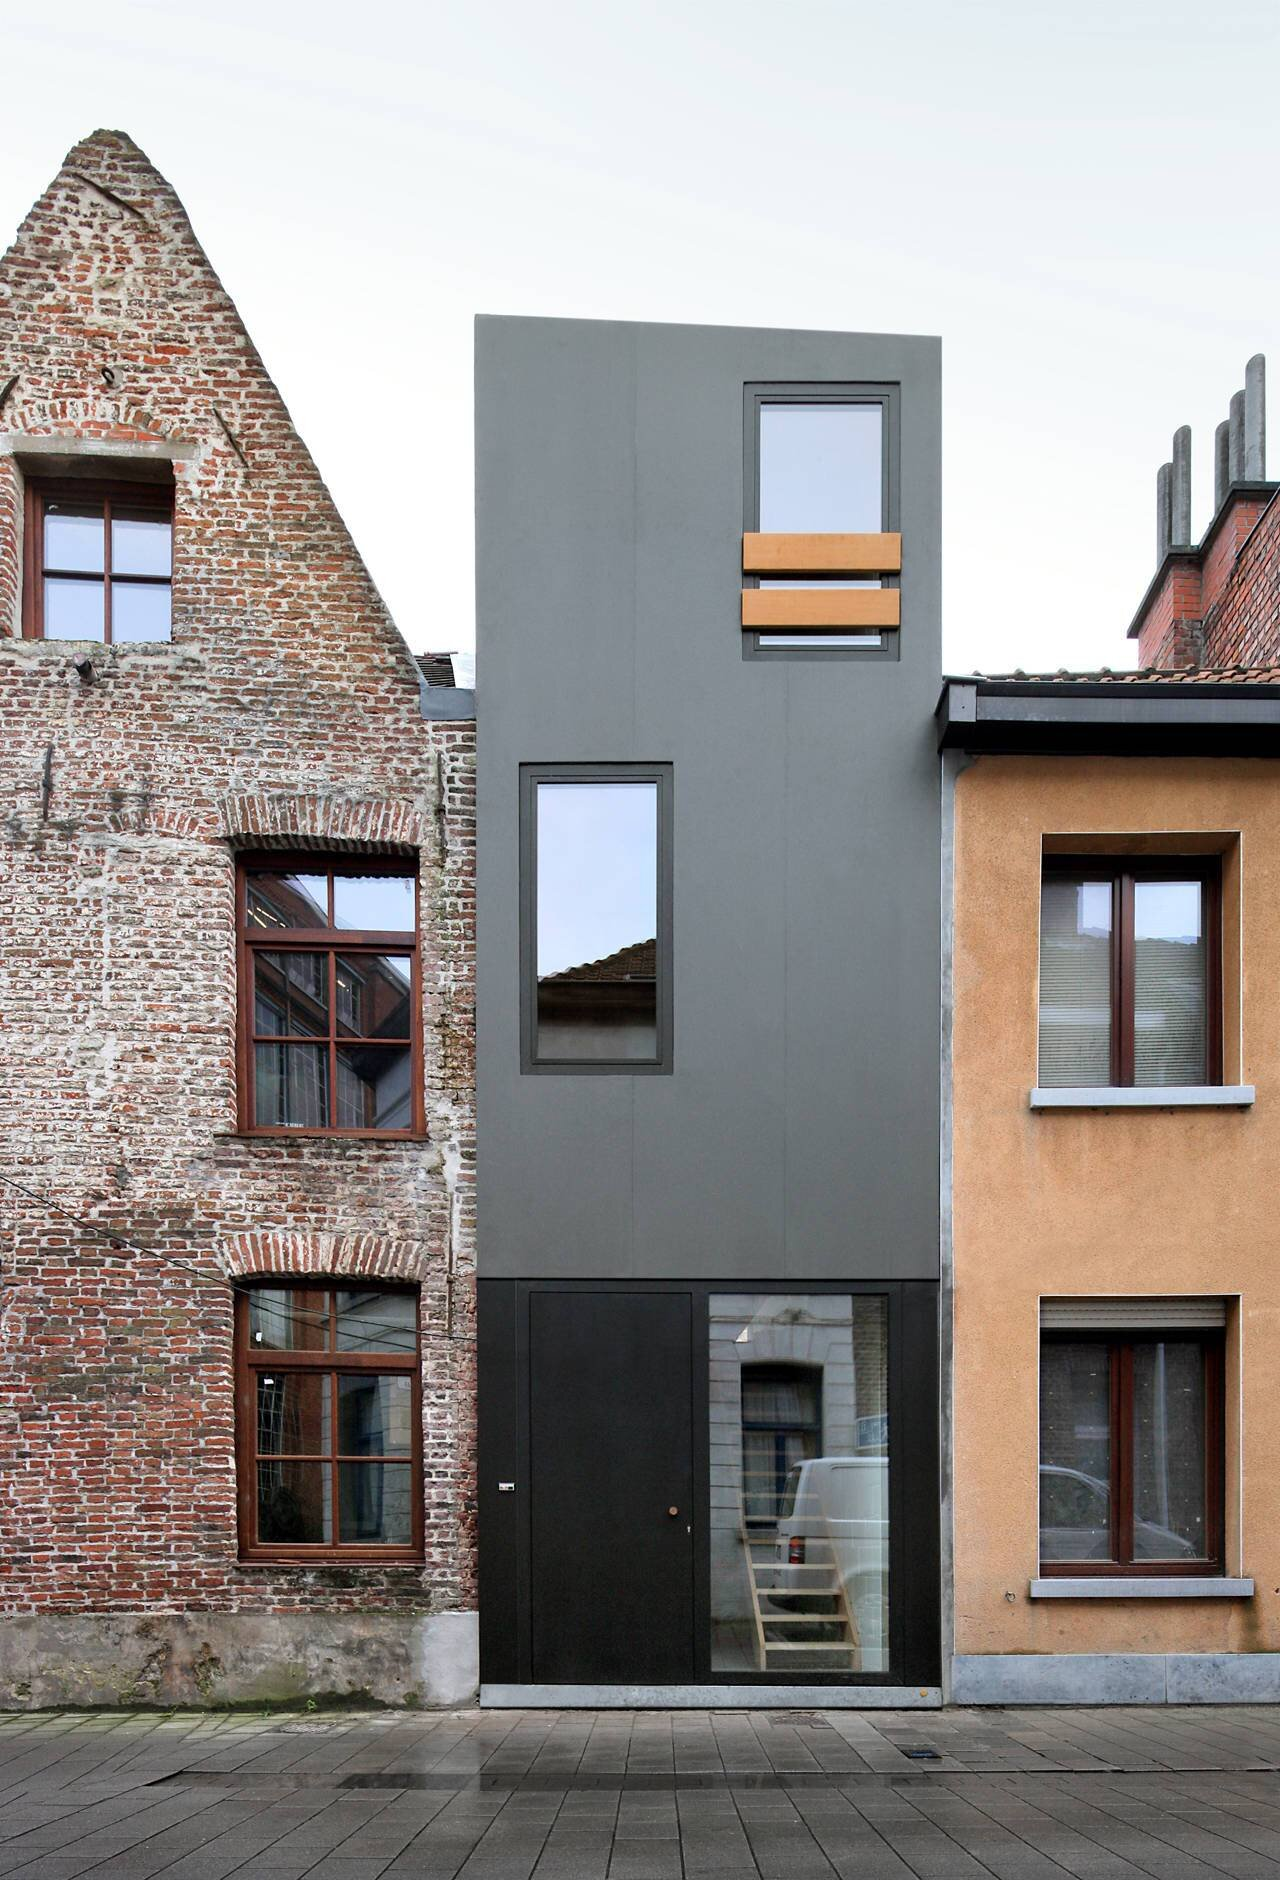 Small House - Gelukstraat Belgium - Dierendonck Blancke Architecten - Exterior - Humble Homes